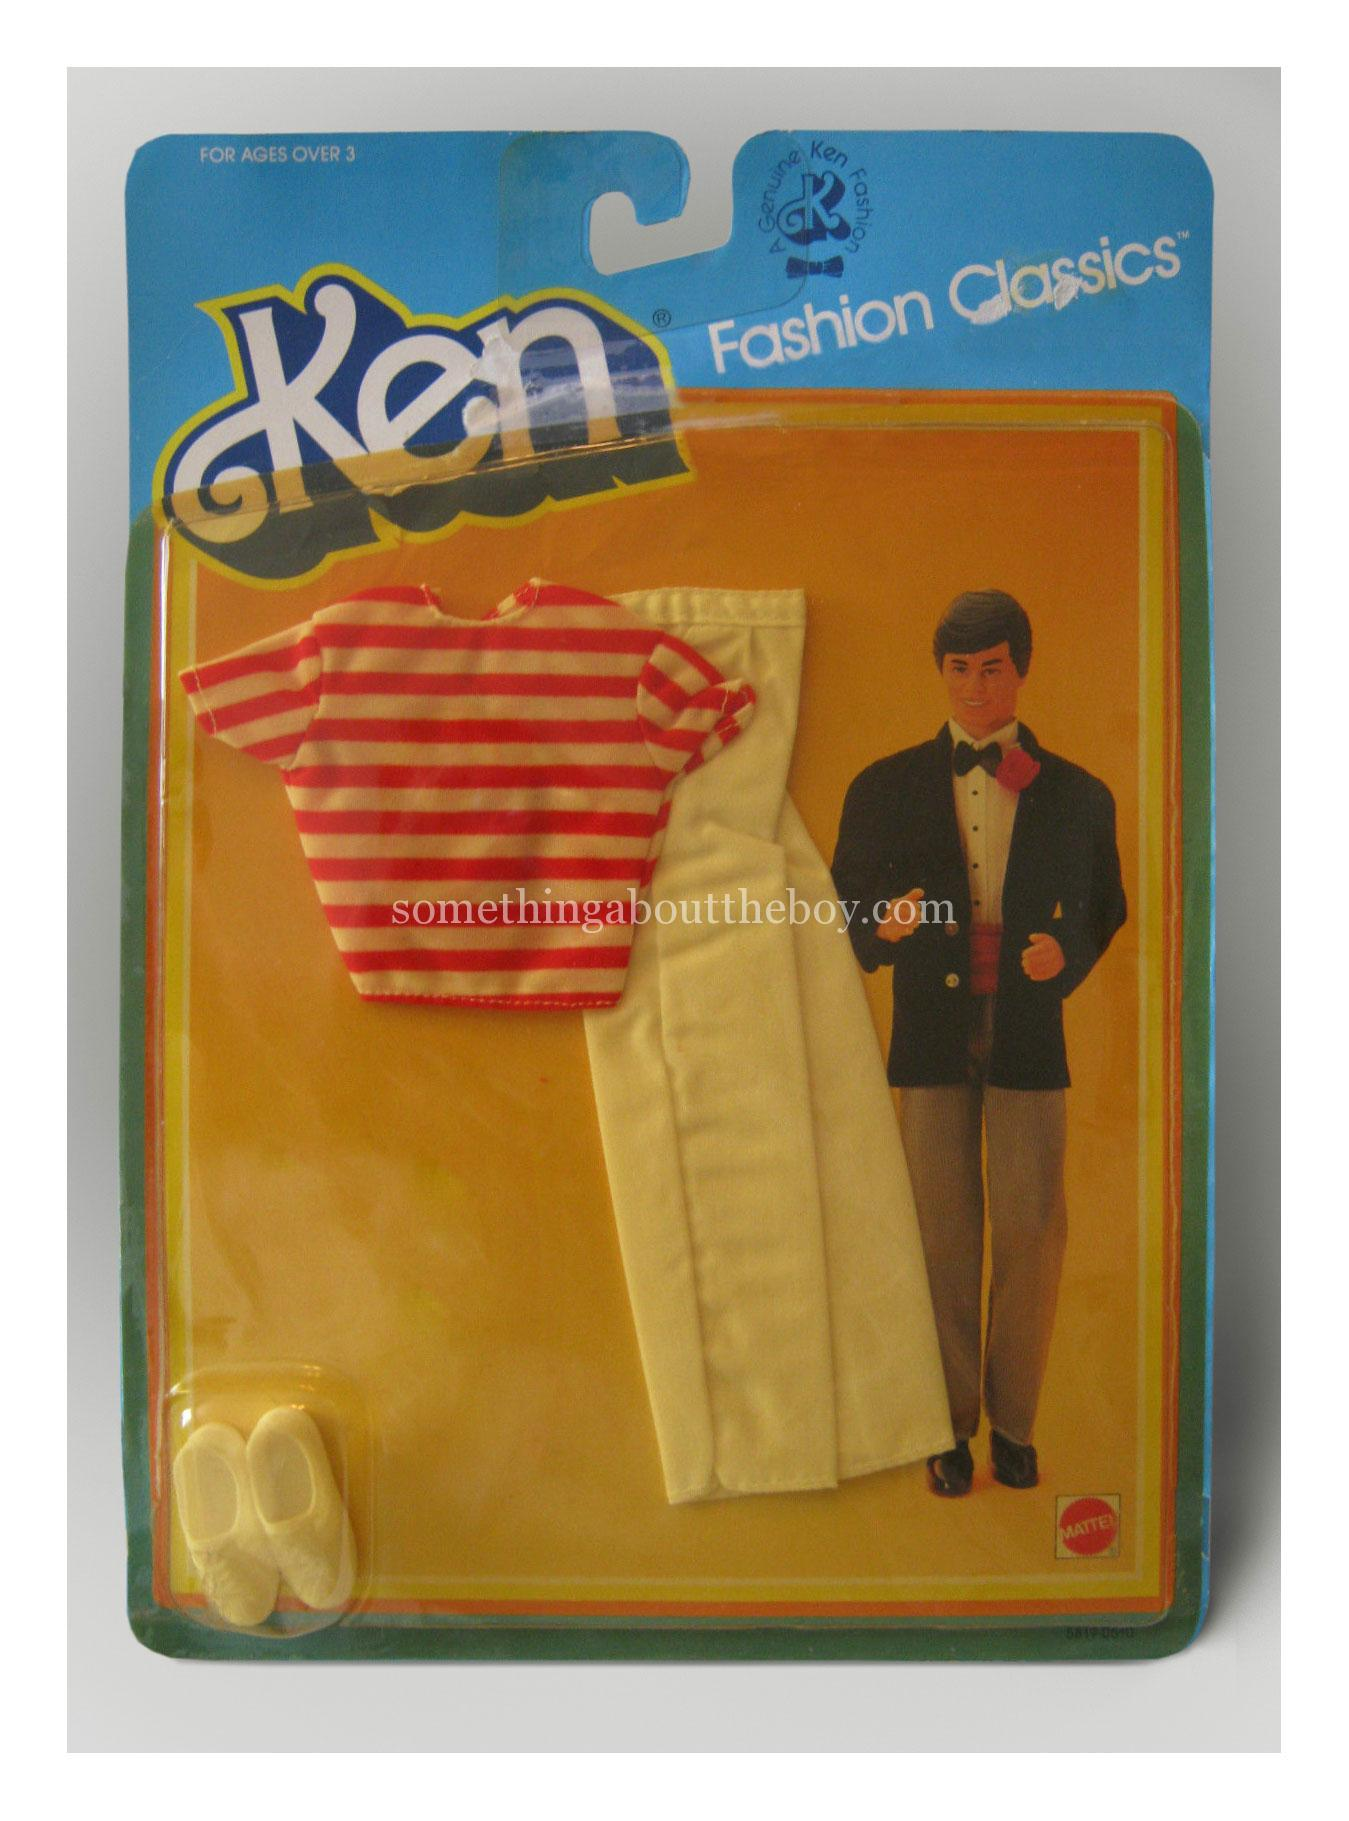 1983-4 Kmart Fashion Classics #5823 in original packaging